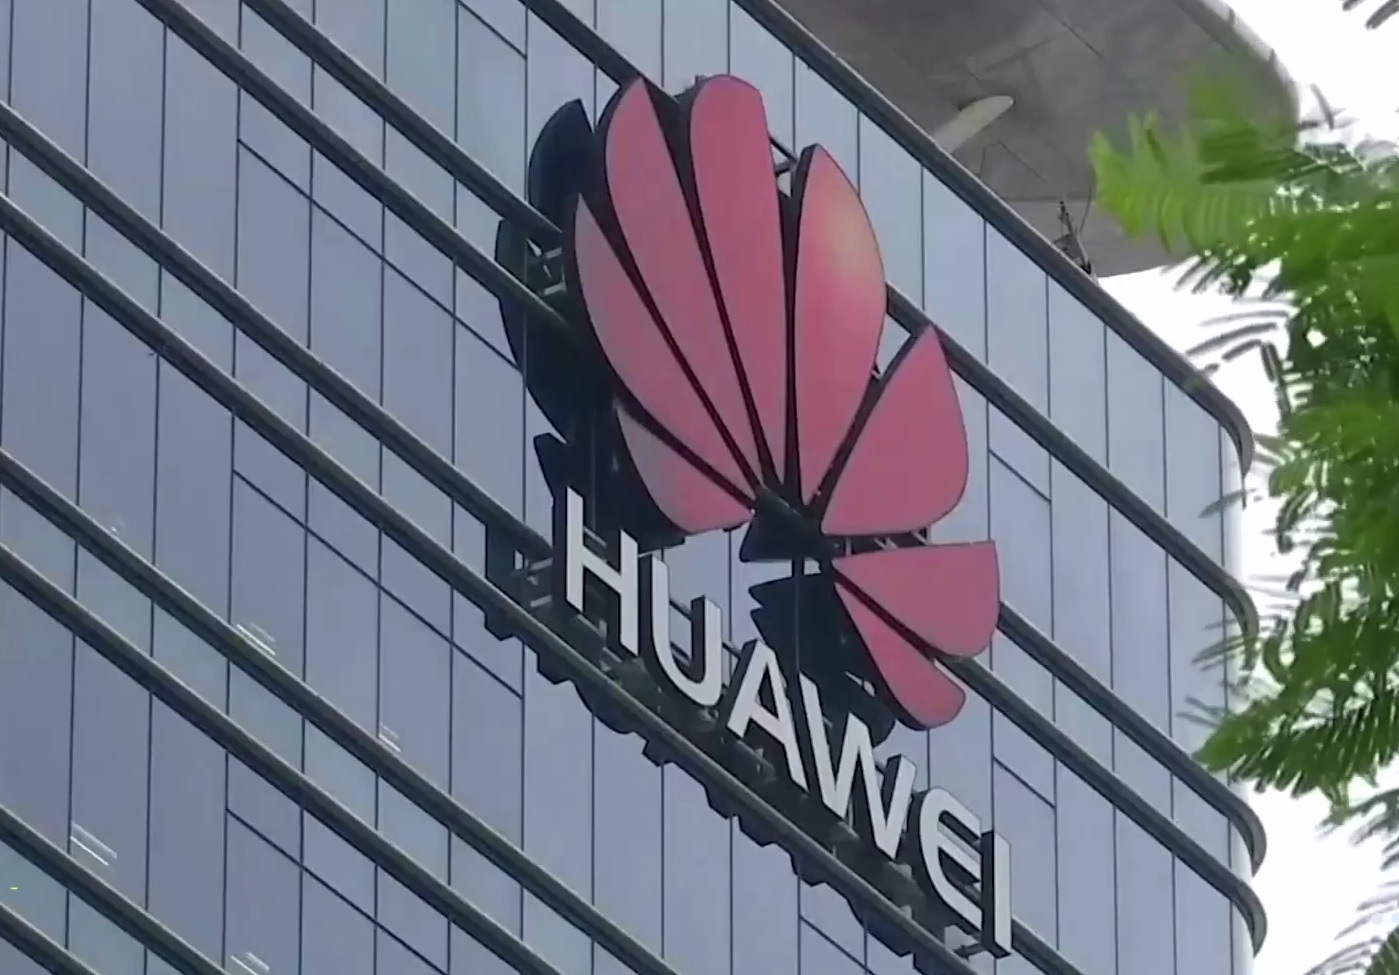 Huawei to Charge $2.50 Royalty Fee for its 5G Patent to Tech Giants- How Users View This Action?